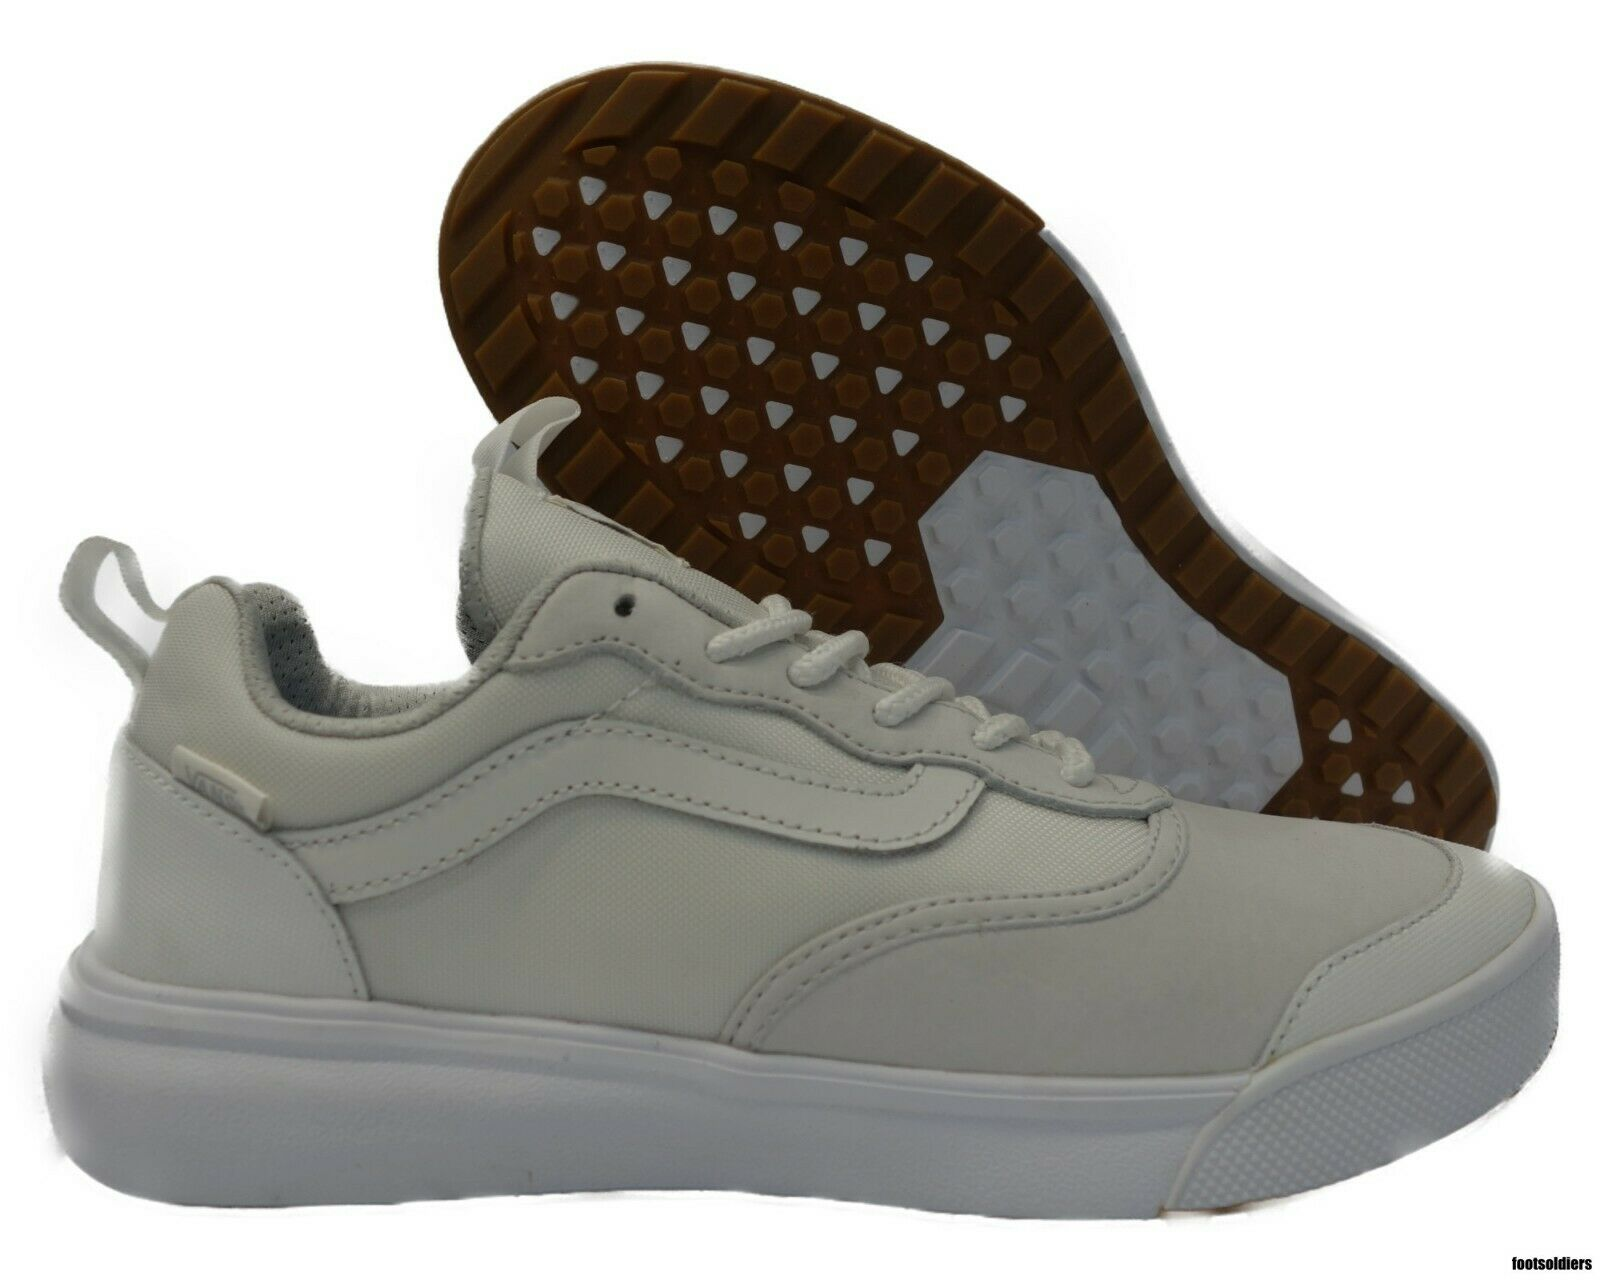 VN0A3DQ3OVZ VANS Ultra LX (blancoo Luz Range Goma) Hombre Mujer